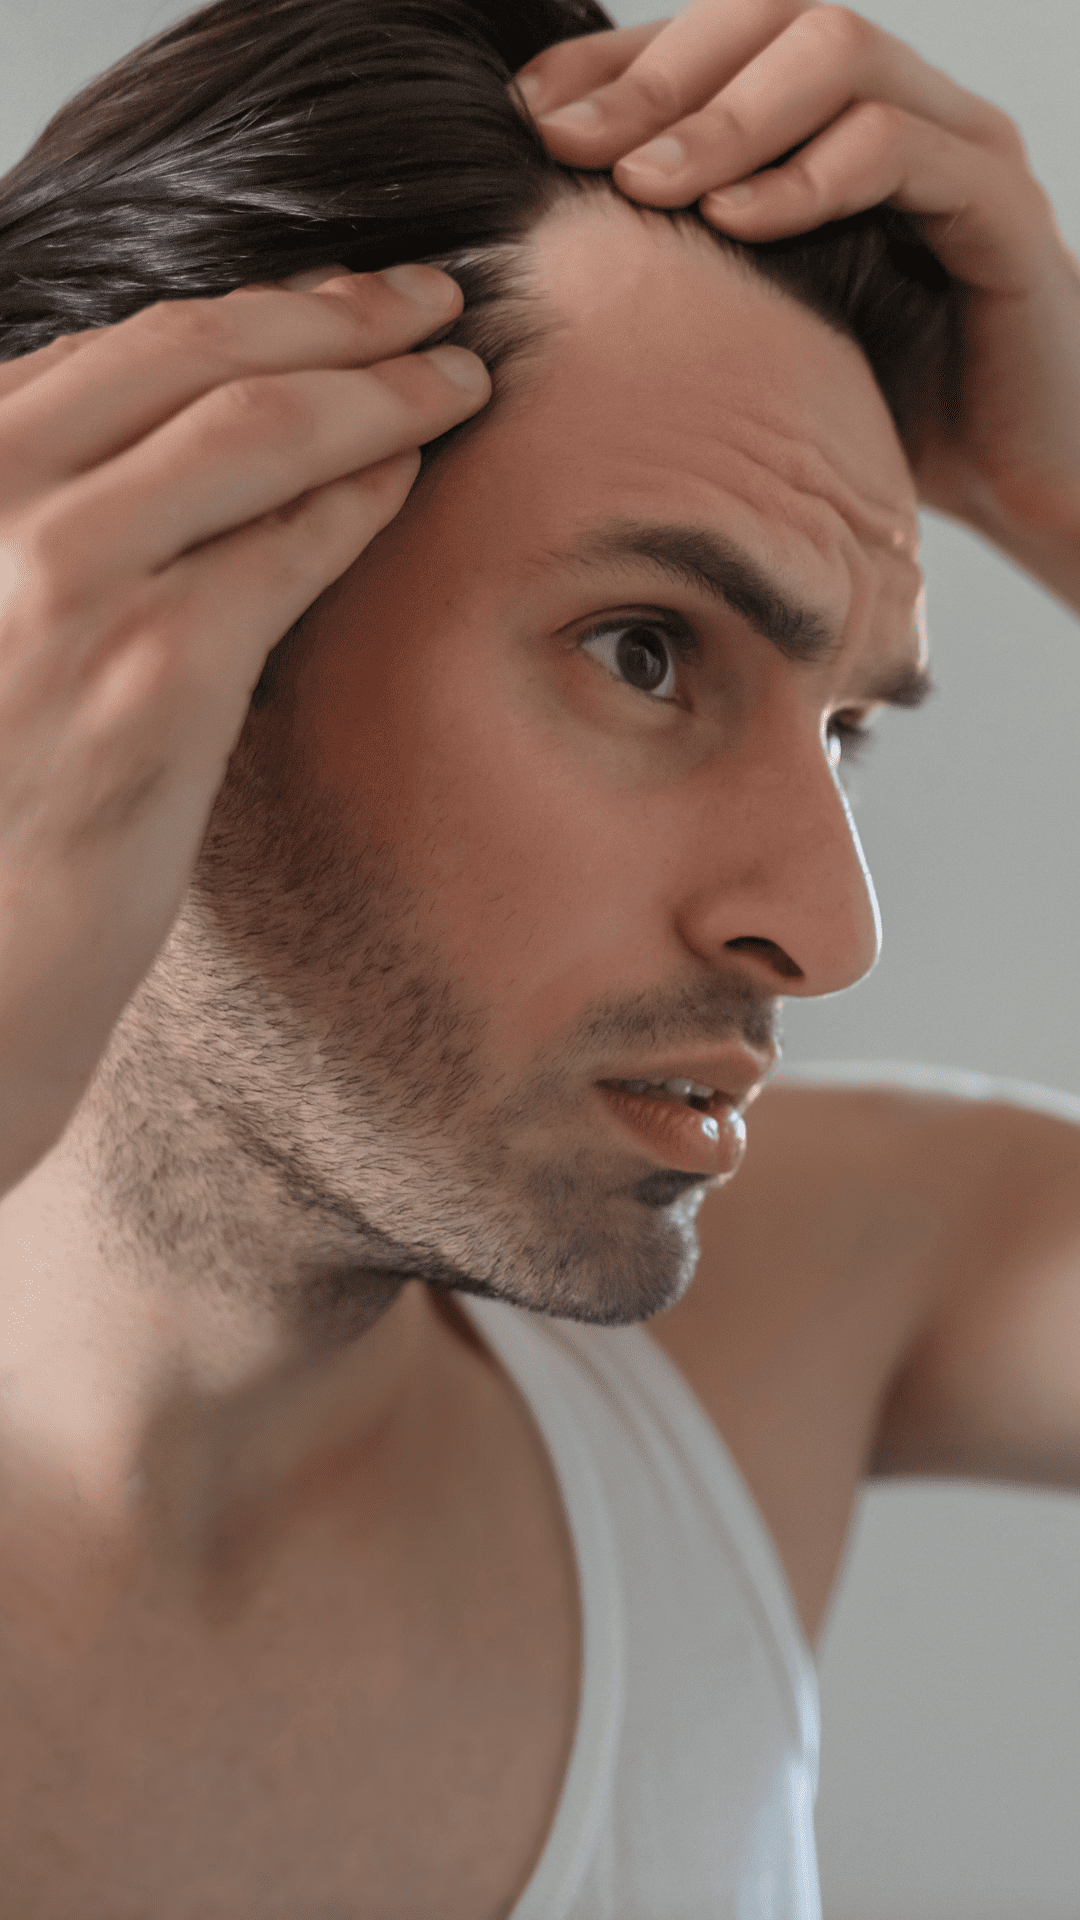 How long will hair loss be from anti depressant medication